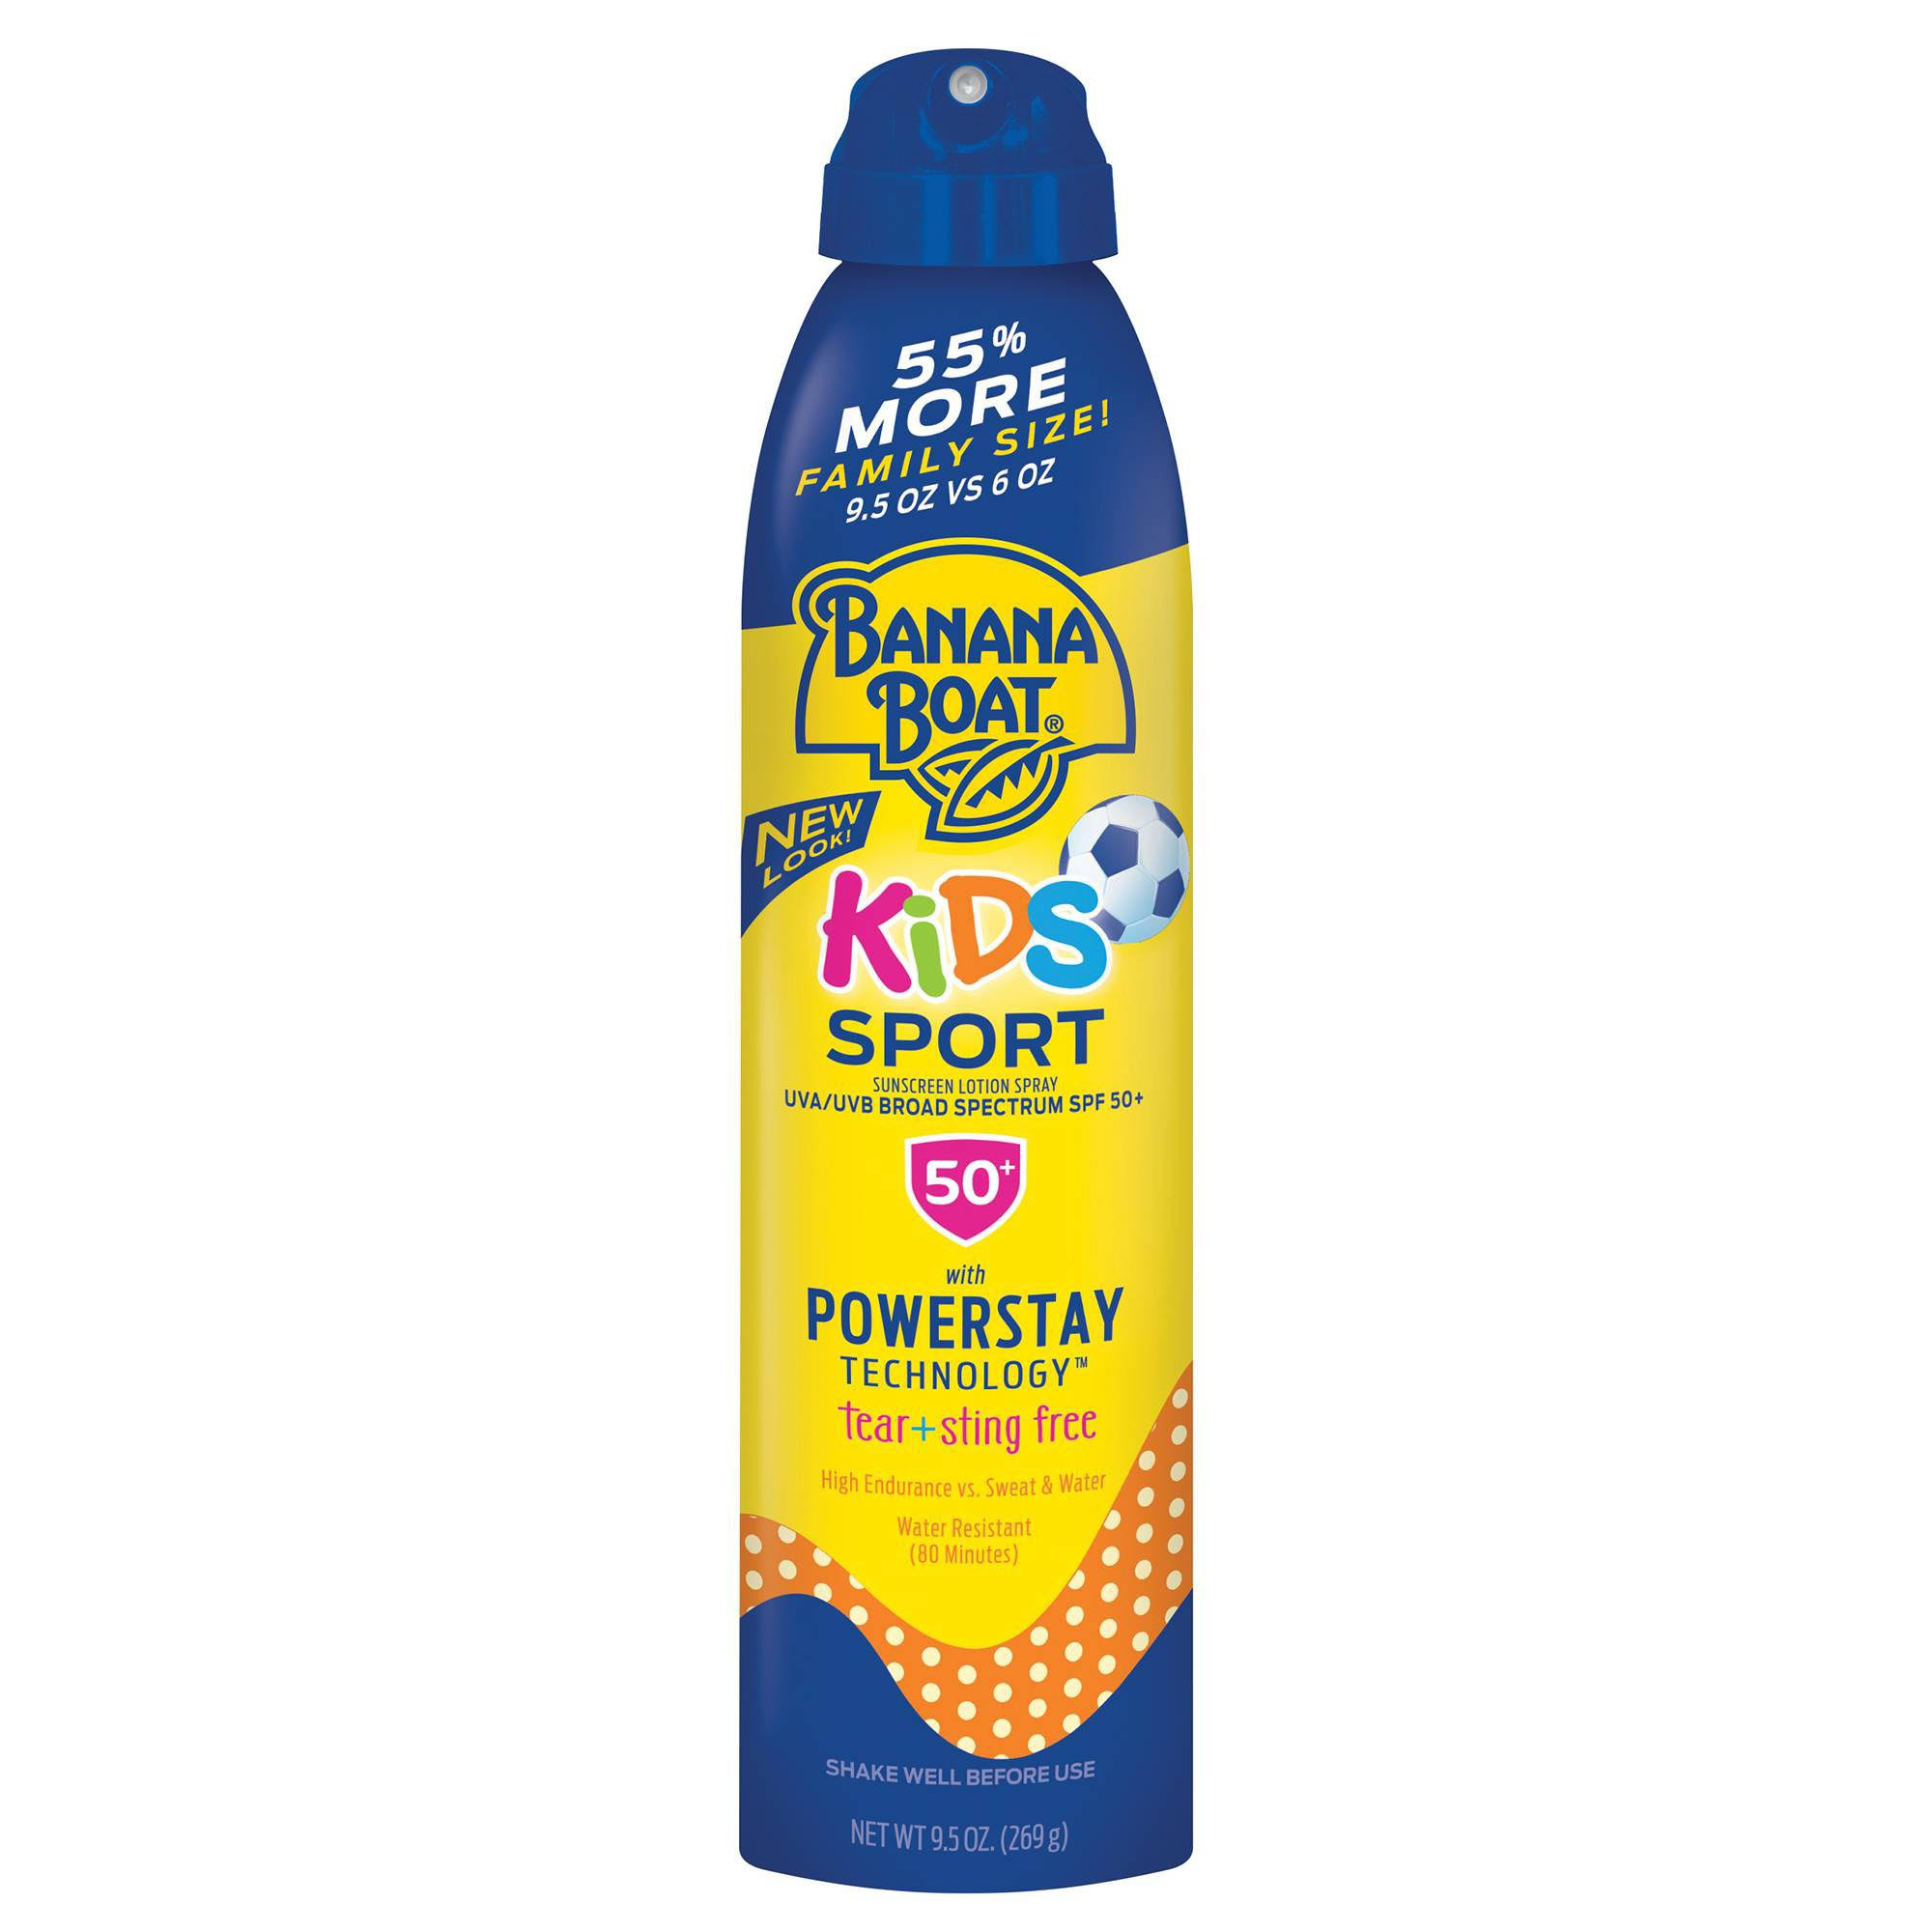 Banana Boat Kids Tear Lotion Spray - SPF 50, 9.5oz